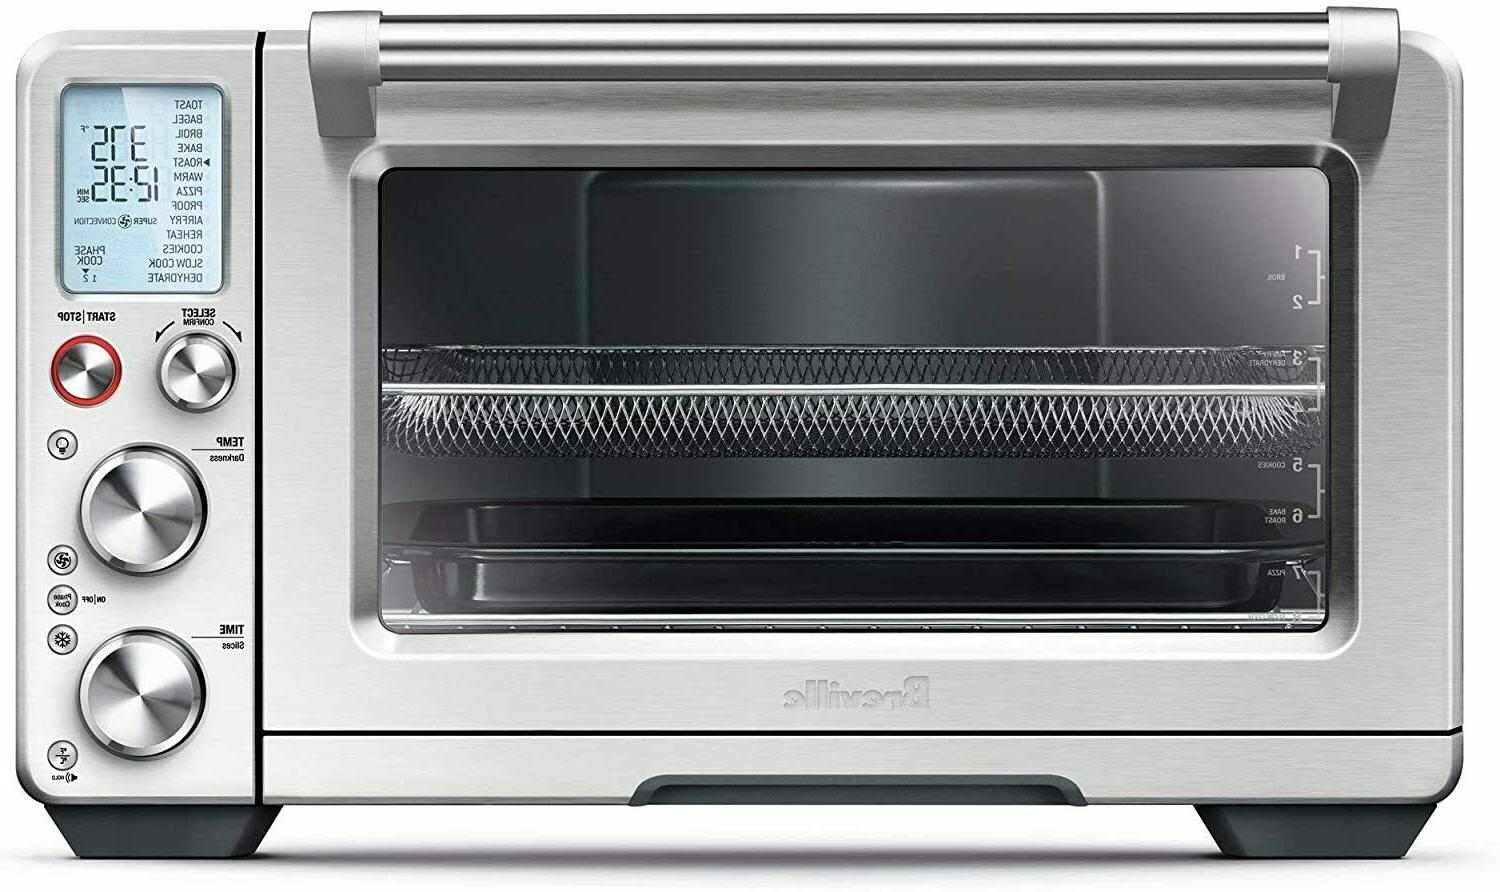 Breville BOV900BSS Convection & Air Fry Smart Oven Air, Brus